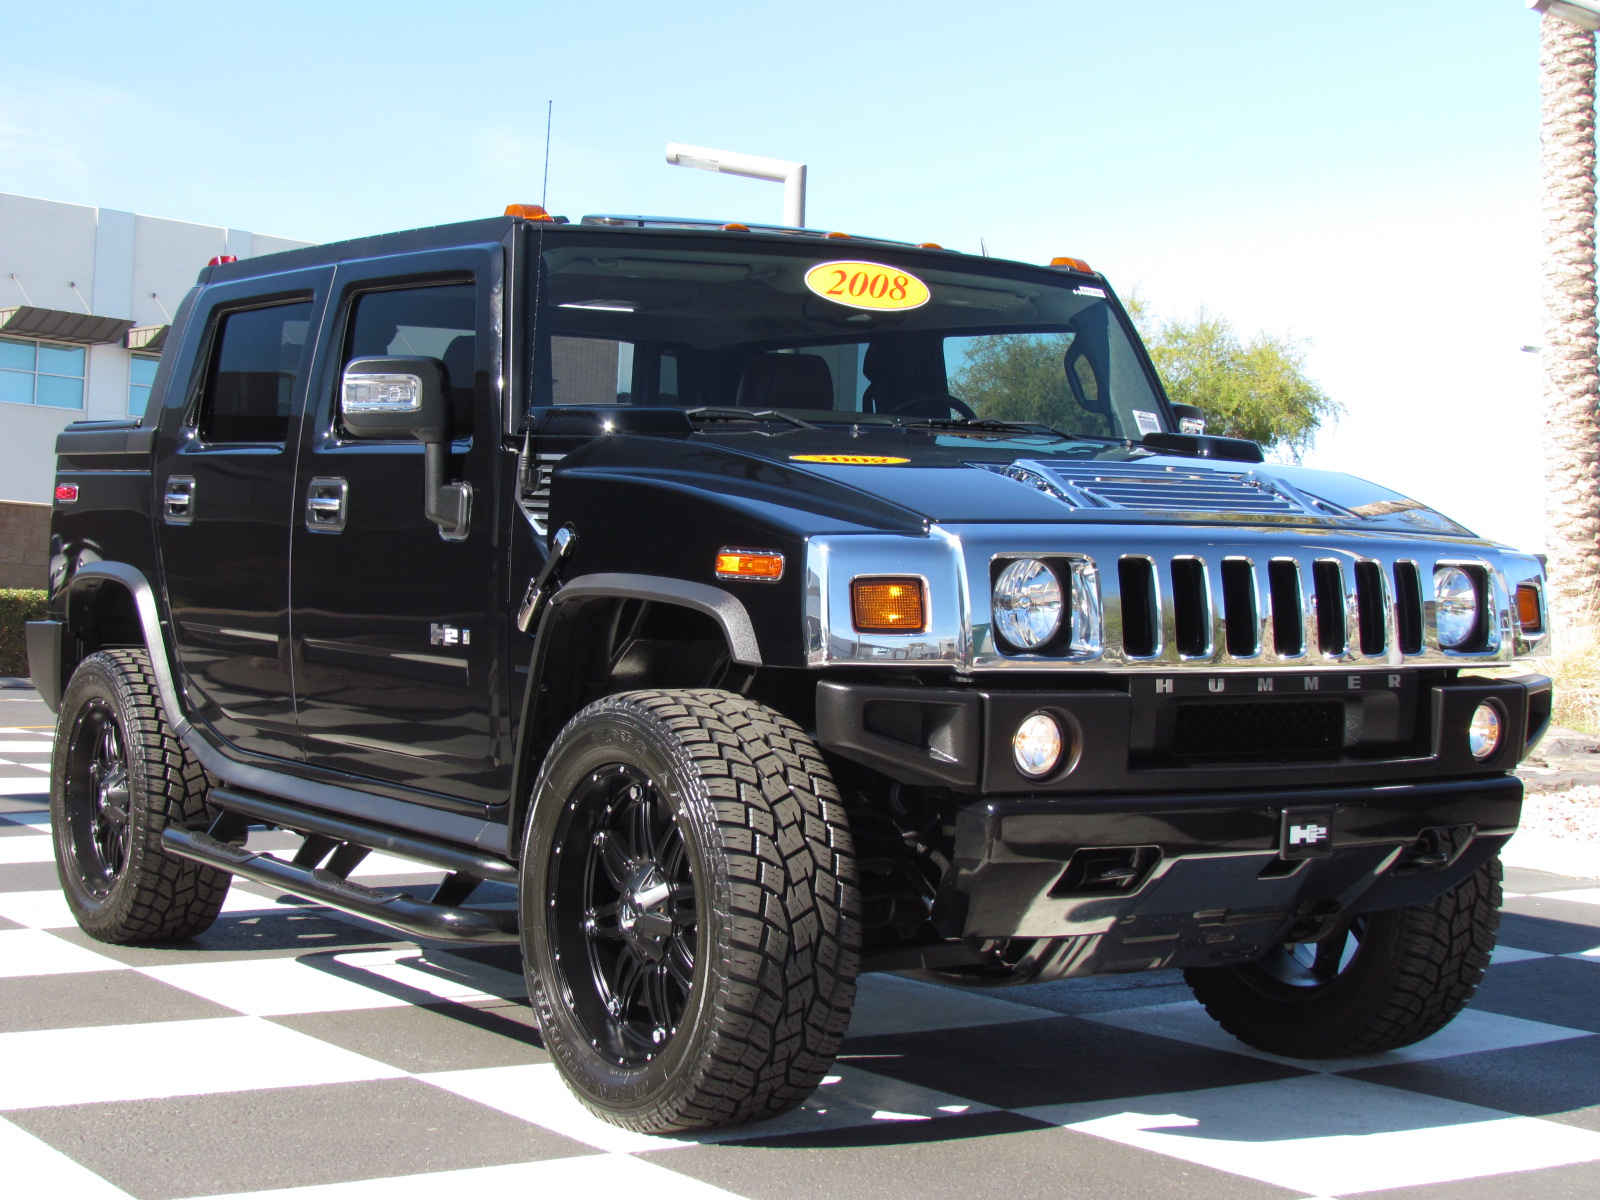 2008 H2 Hummer Sut 22 Wheels Amp Sedona Int Envision Auto